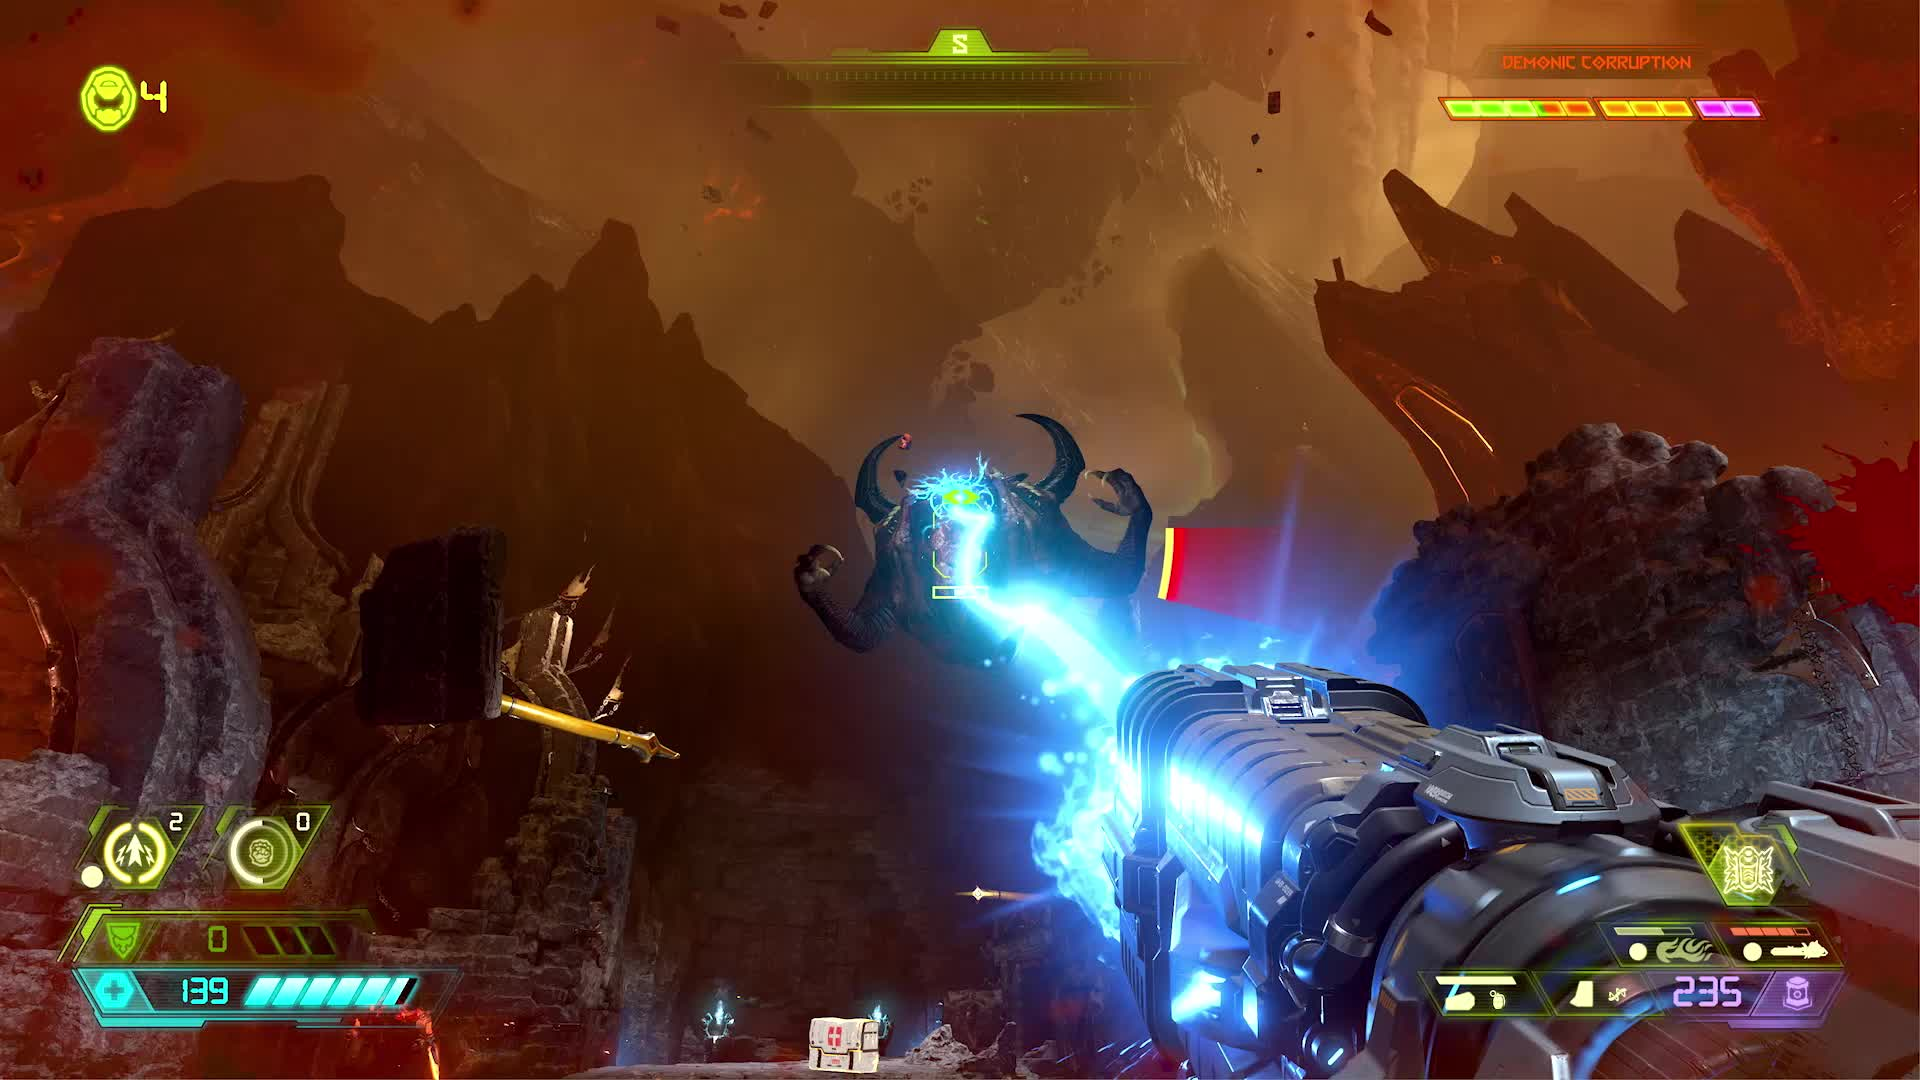 destiny2, vlc-record-2019-06-06-16h35m29s-DOOM Eternal Broll.mp4- GIFs